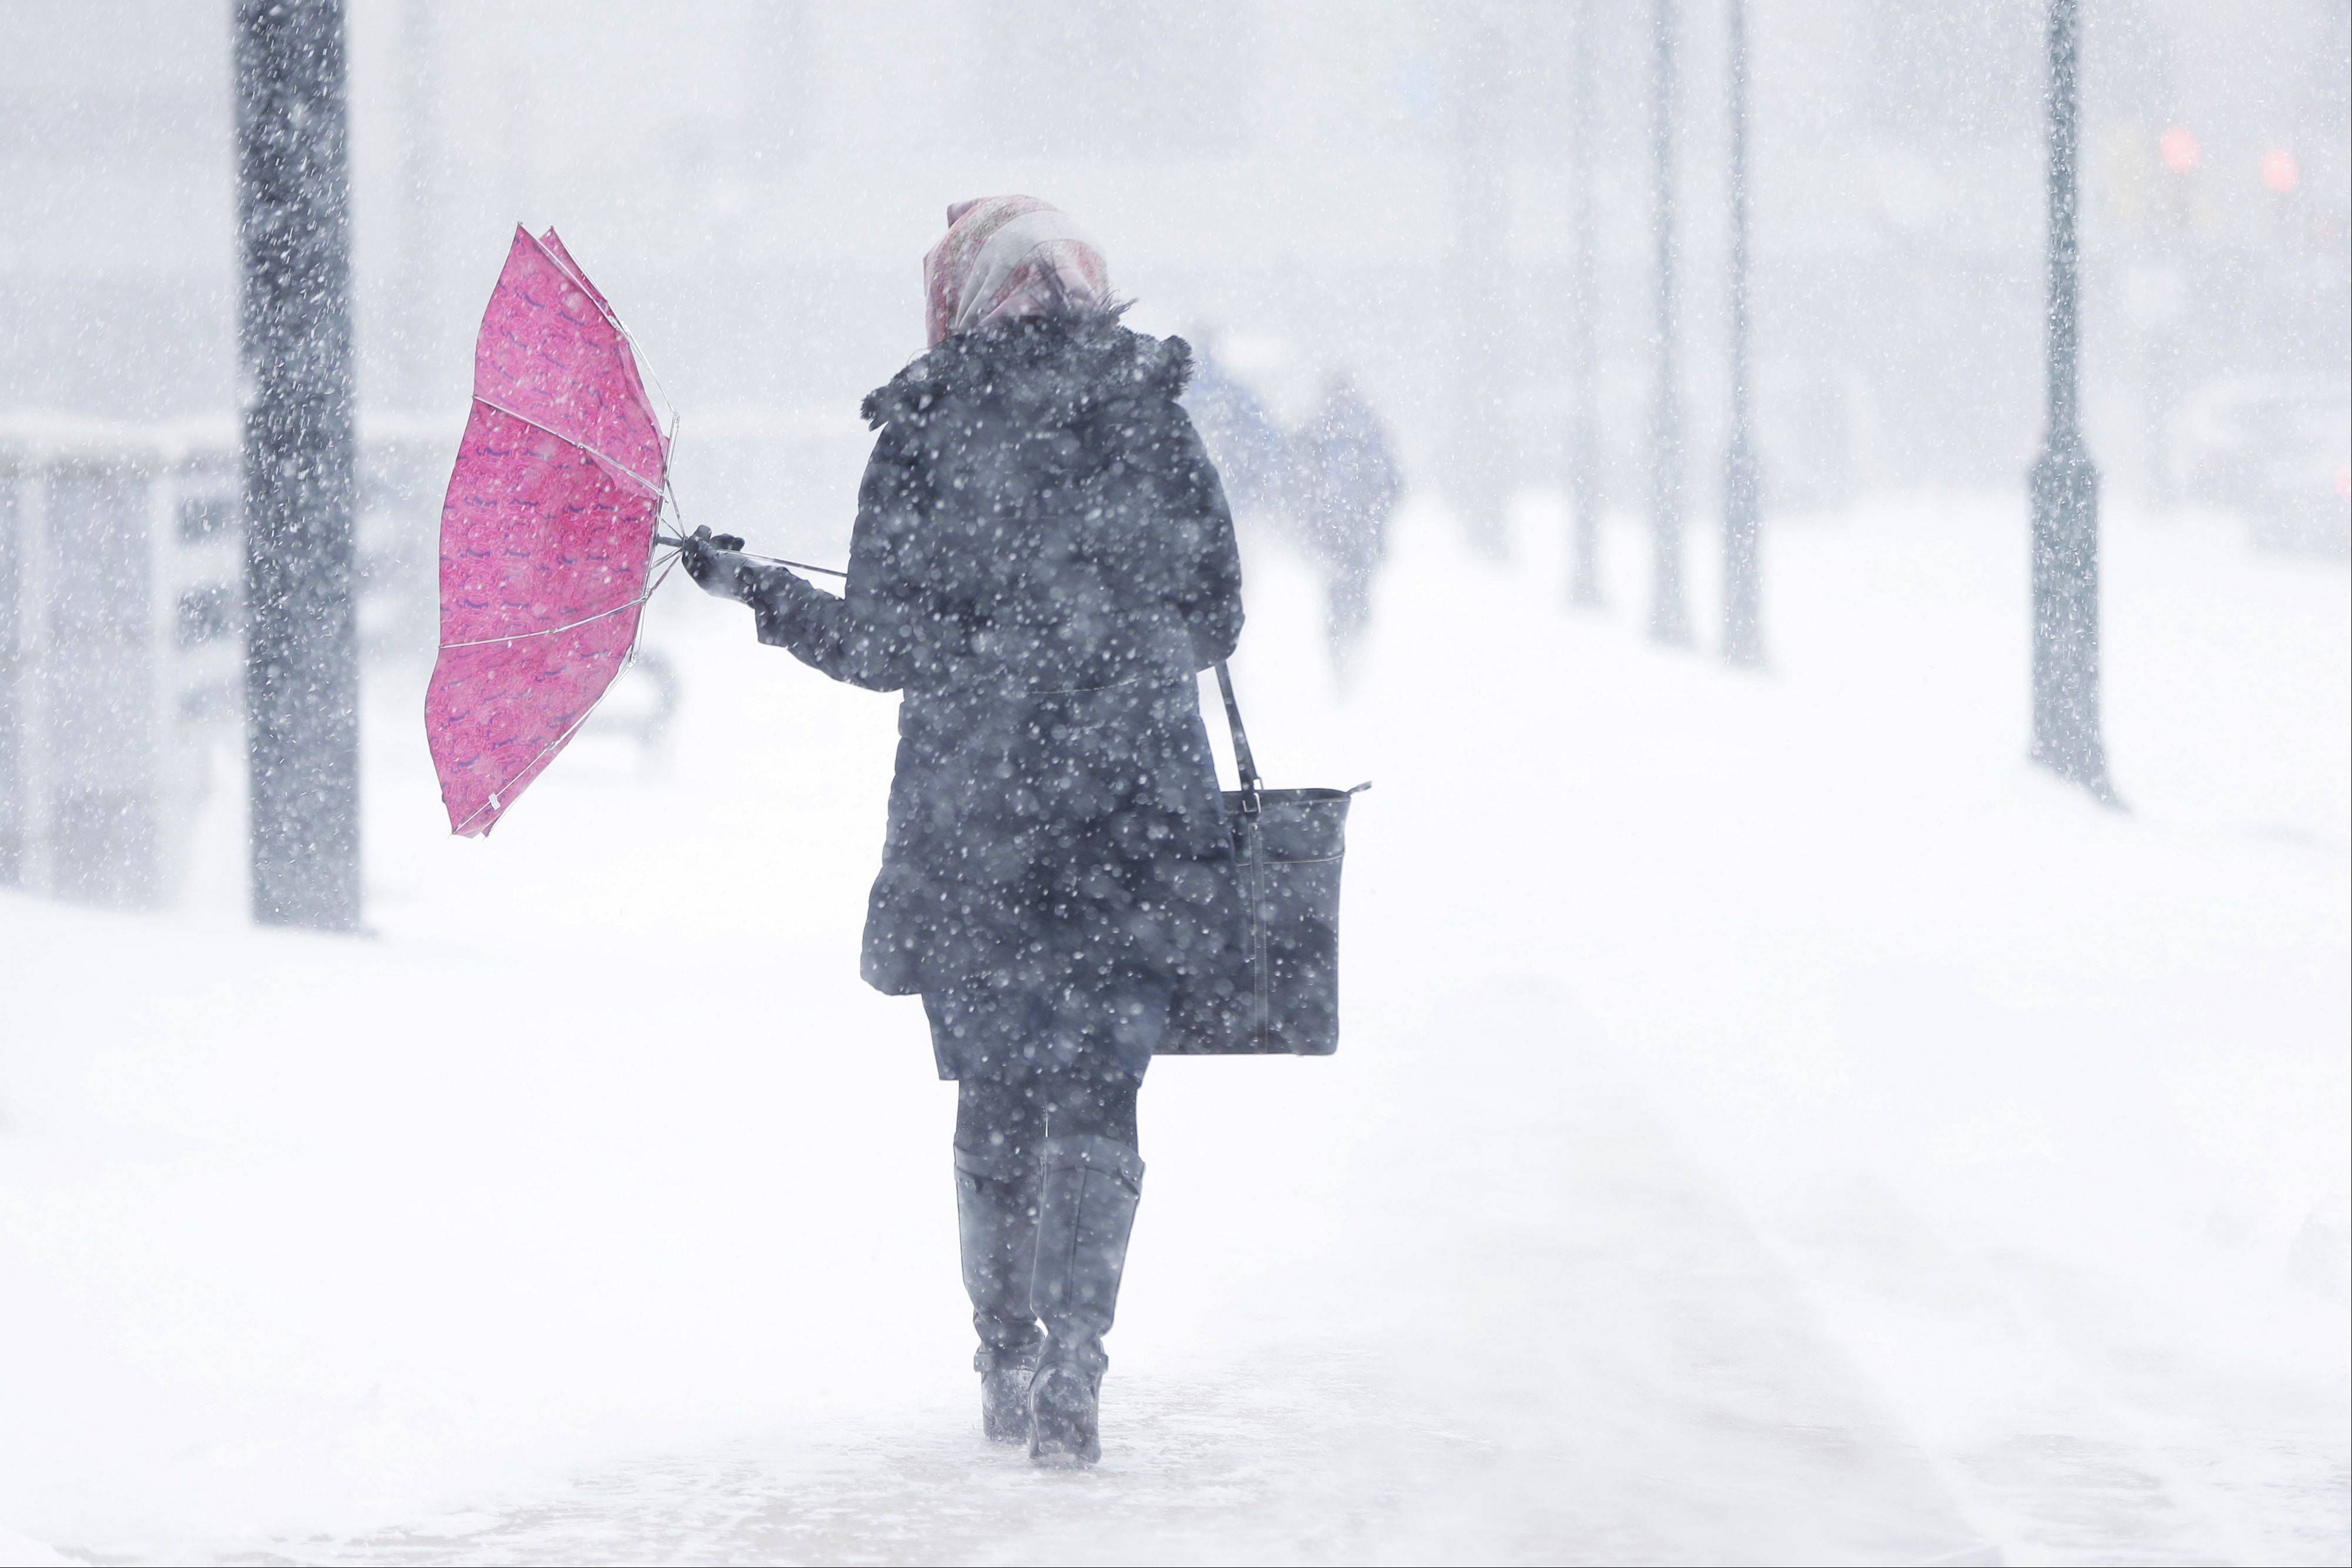 A pedestrian�s umbrellas is turned inside out during a winter snowstorm Tuesday in Philadelphia. A storm is sweeping across the Mid-Atlantic and New England. The National Weather Service said the storm could bring 8 to 12 inches of snow to Philadelphia and New York City, and more than a foot in Boston.